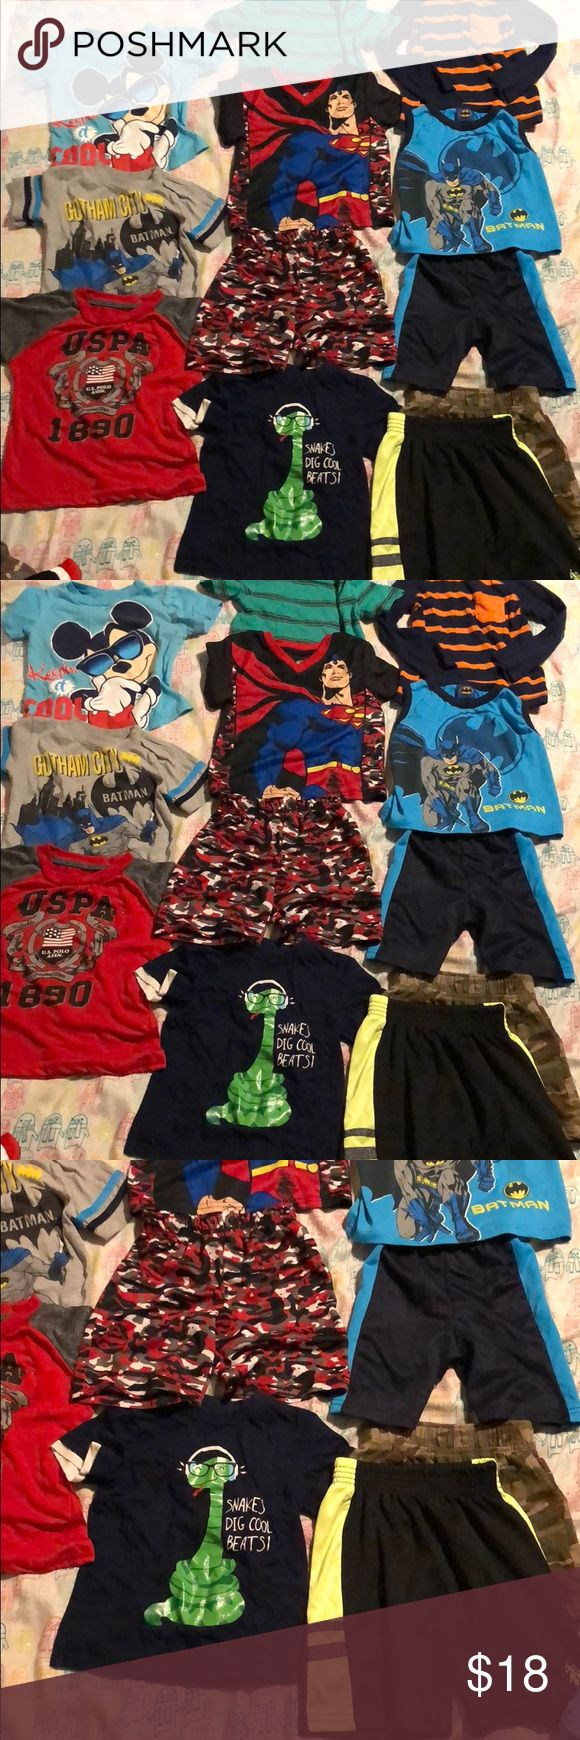 Bundle of boys toddler clothes Gently used , comes from a smoke free home.Brand names clothing.All washed and clean before shipment! Sizes 2T,3T,and 4T . Total of :4 shorts               8 shirts Polo by Ralph Lauren Other